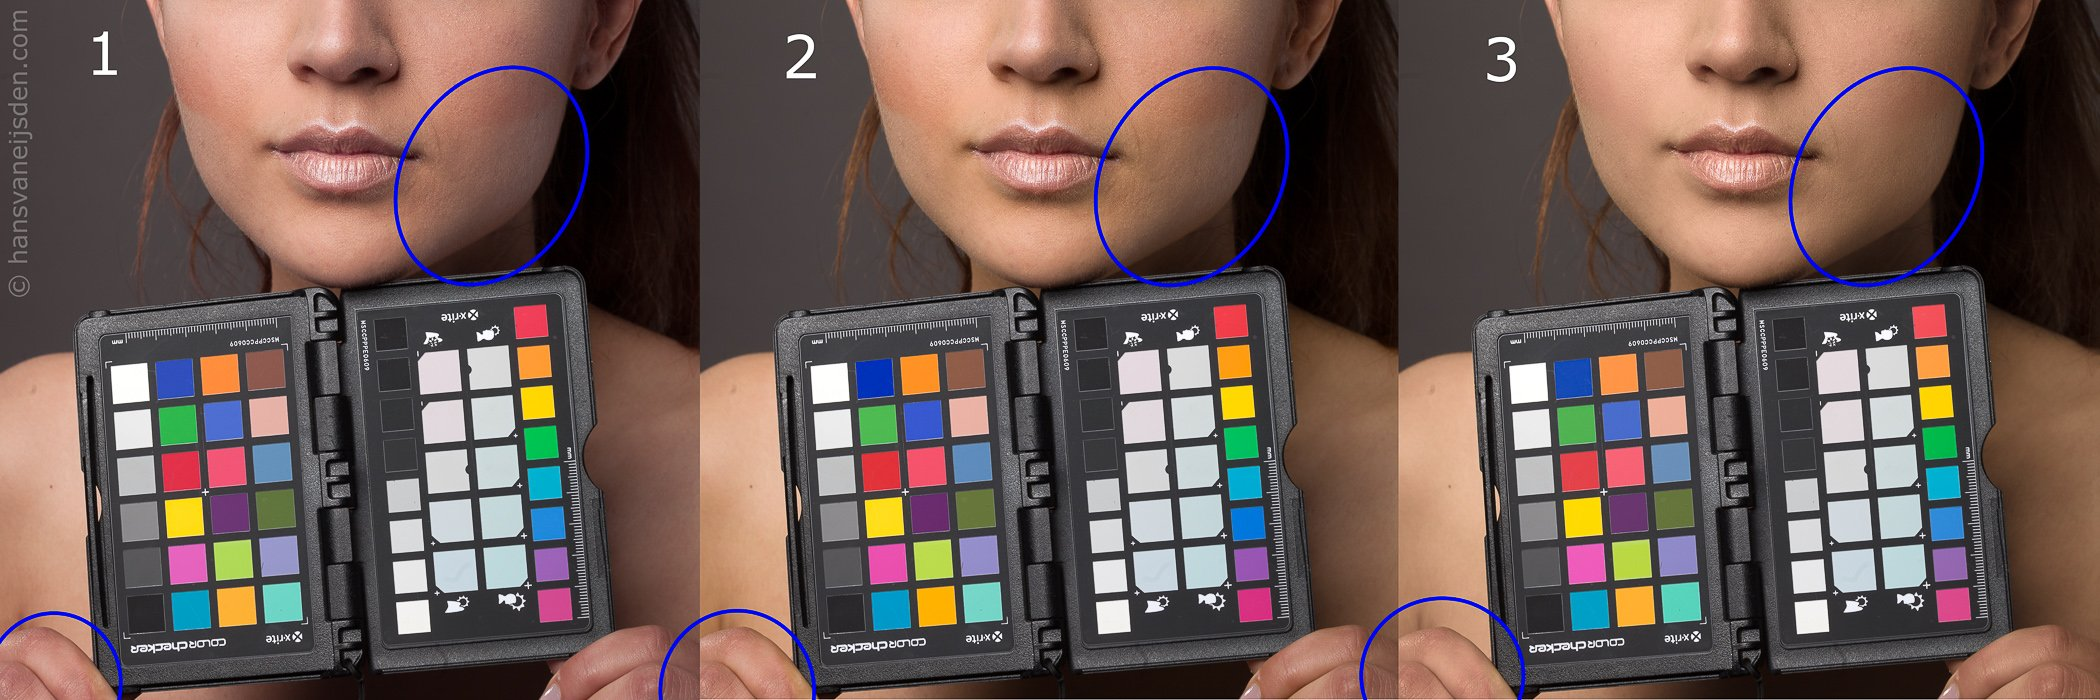 ColorChecker: How to Get Perfect Skin Colors With Every Camera